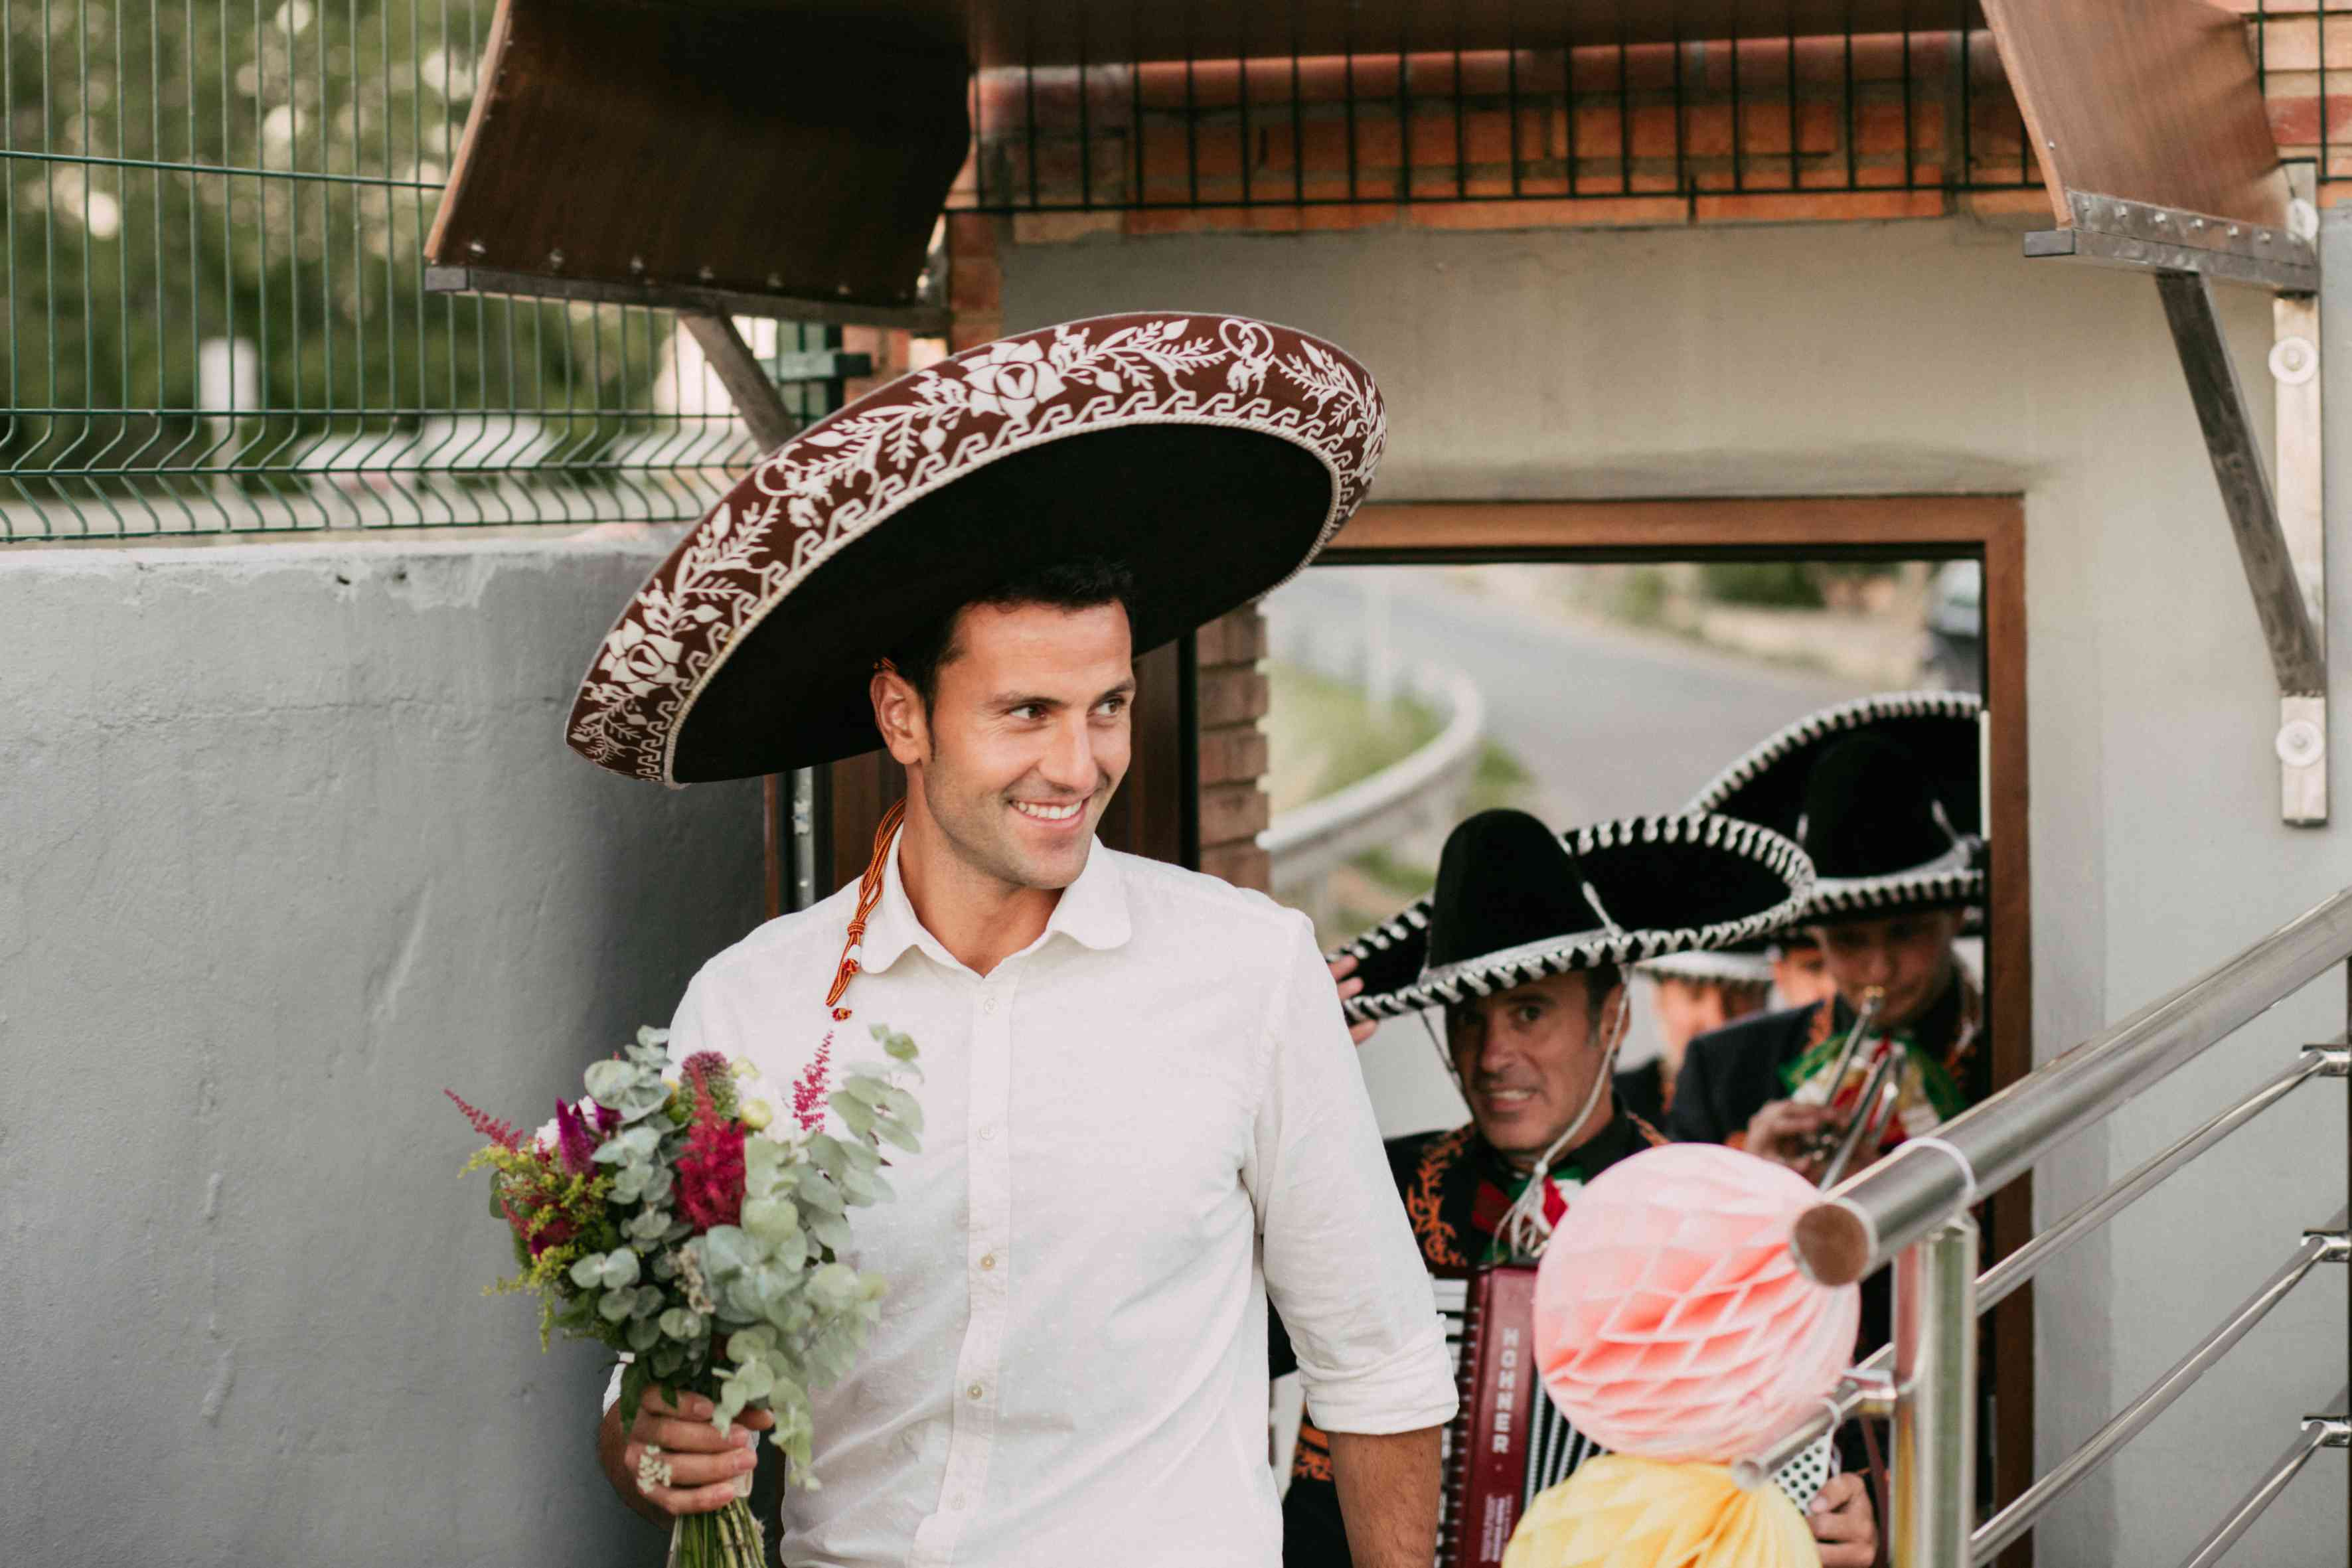 Groom in mariachi hat